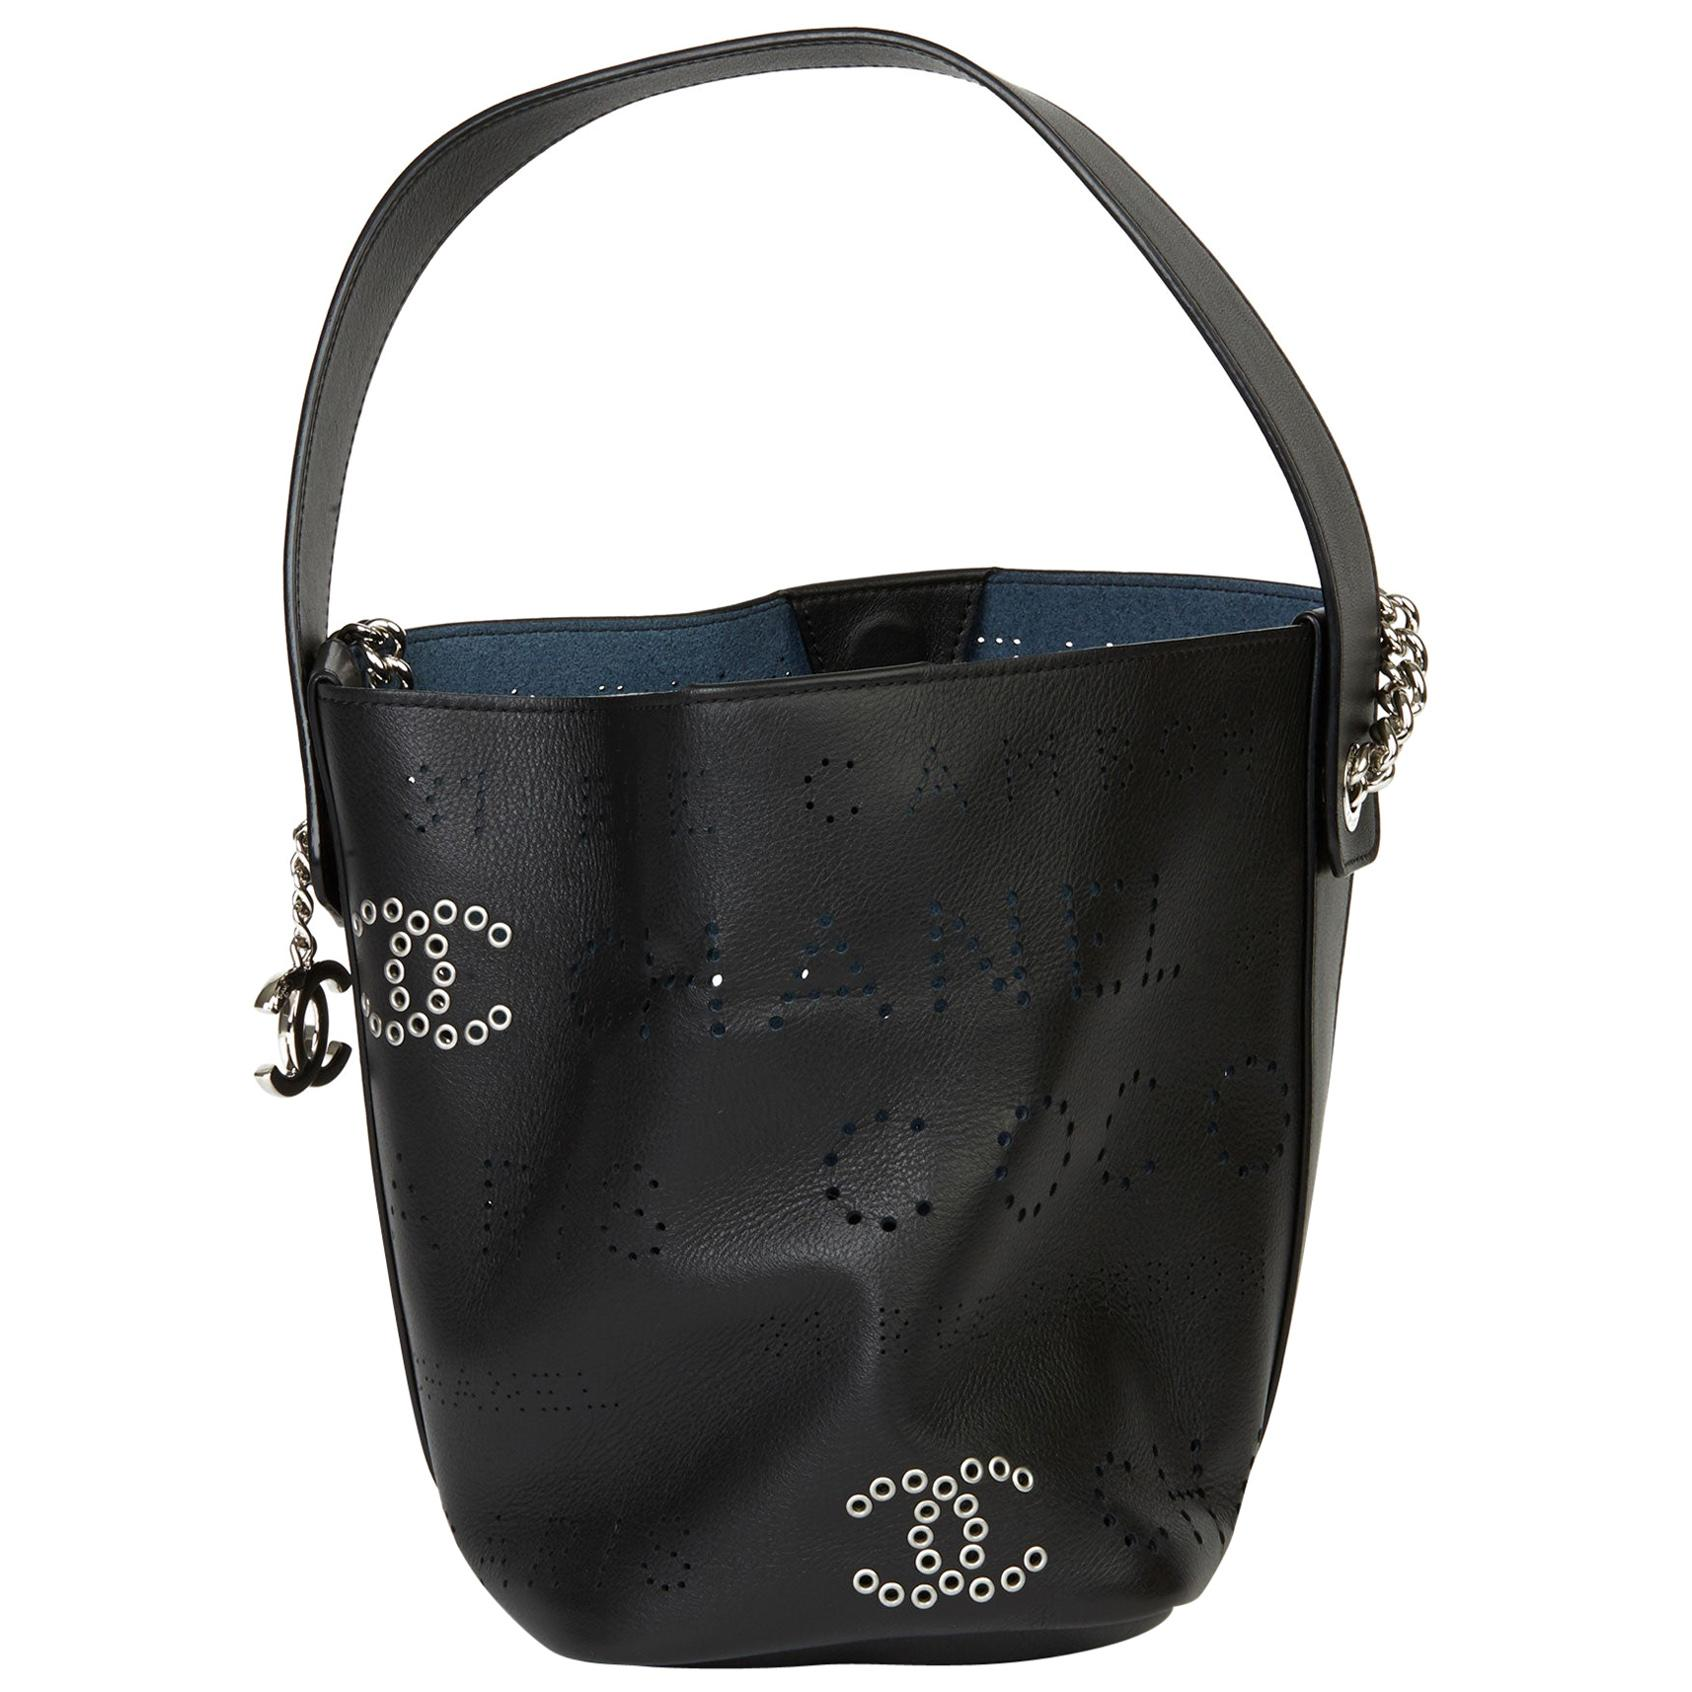 2019 Chanel Black Perforated Calfskin Logo Eyelets Bucket Bag with Tweed Pouch